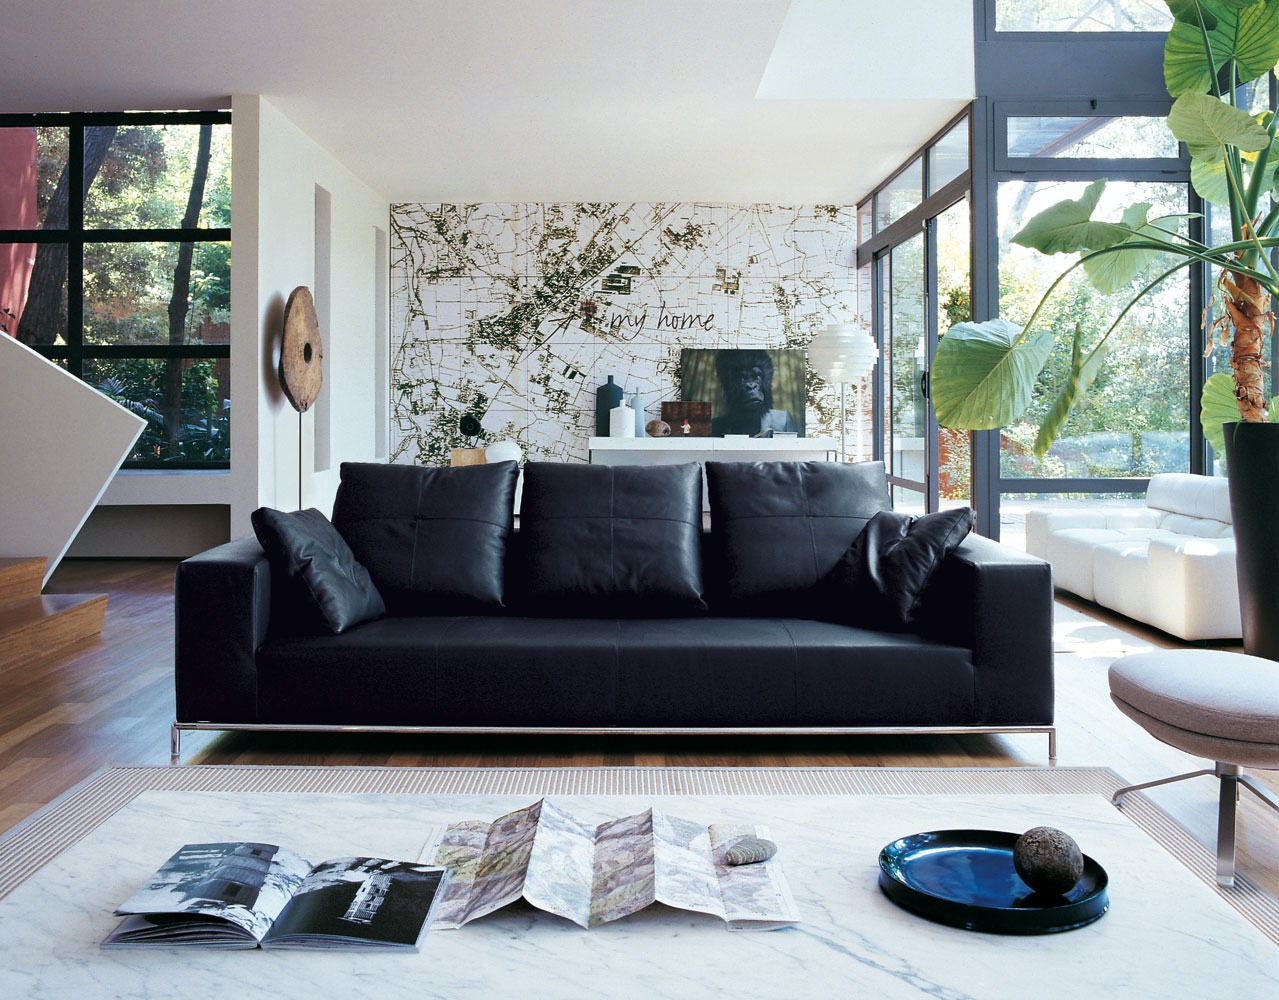 Super Black Leather Sofa Interior Design Ideas Download Free Architecture Designs Scobabritishbridgeorg